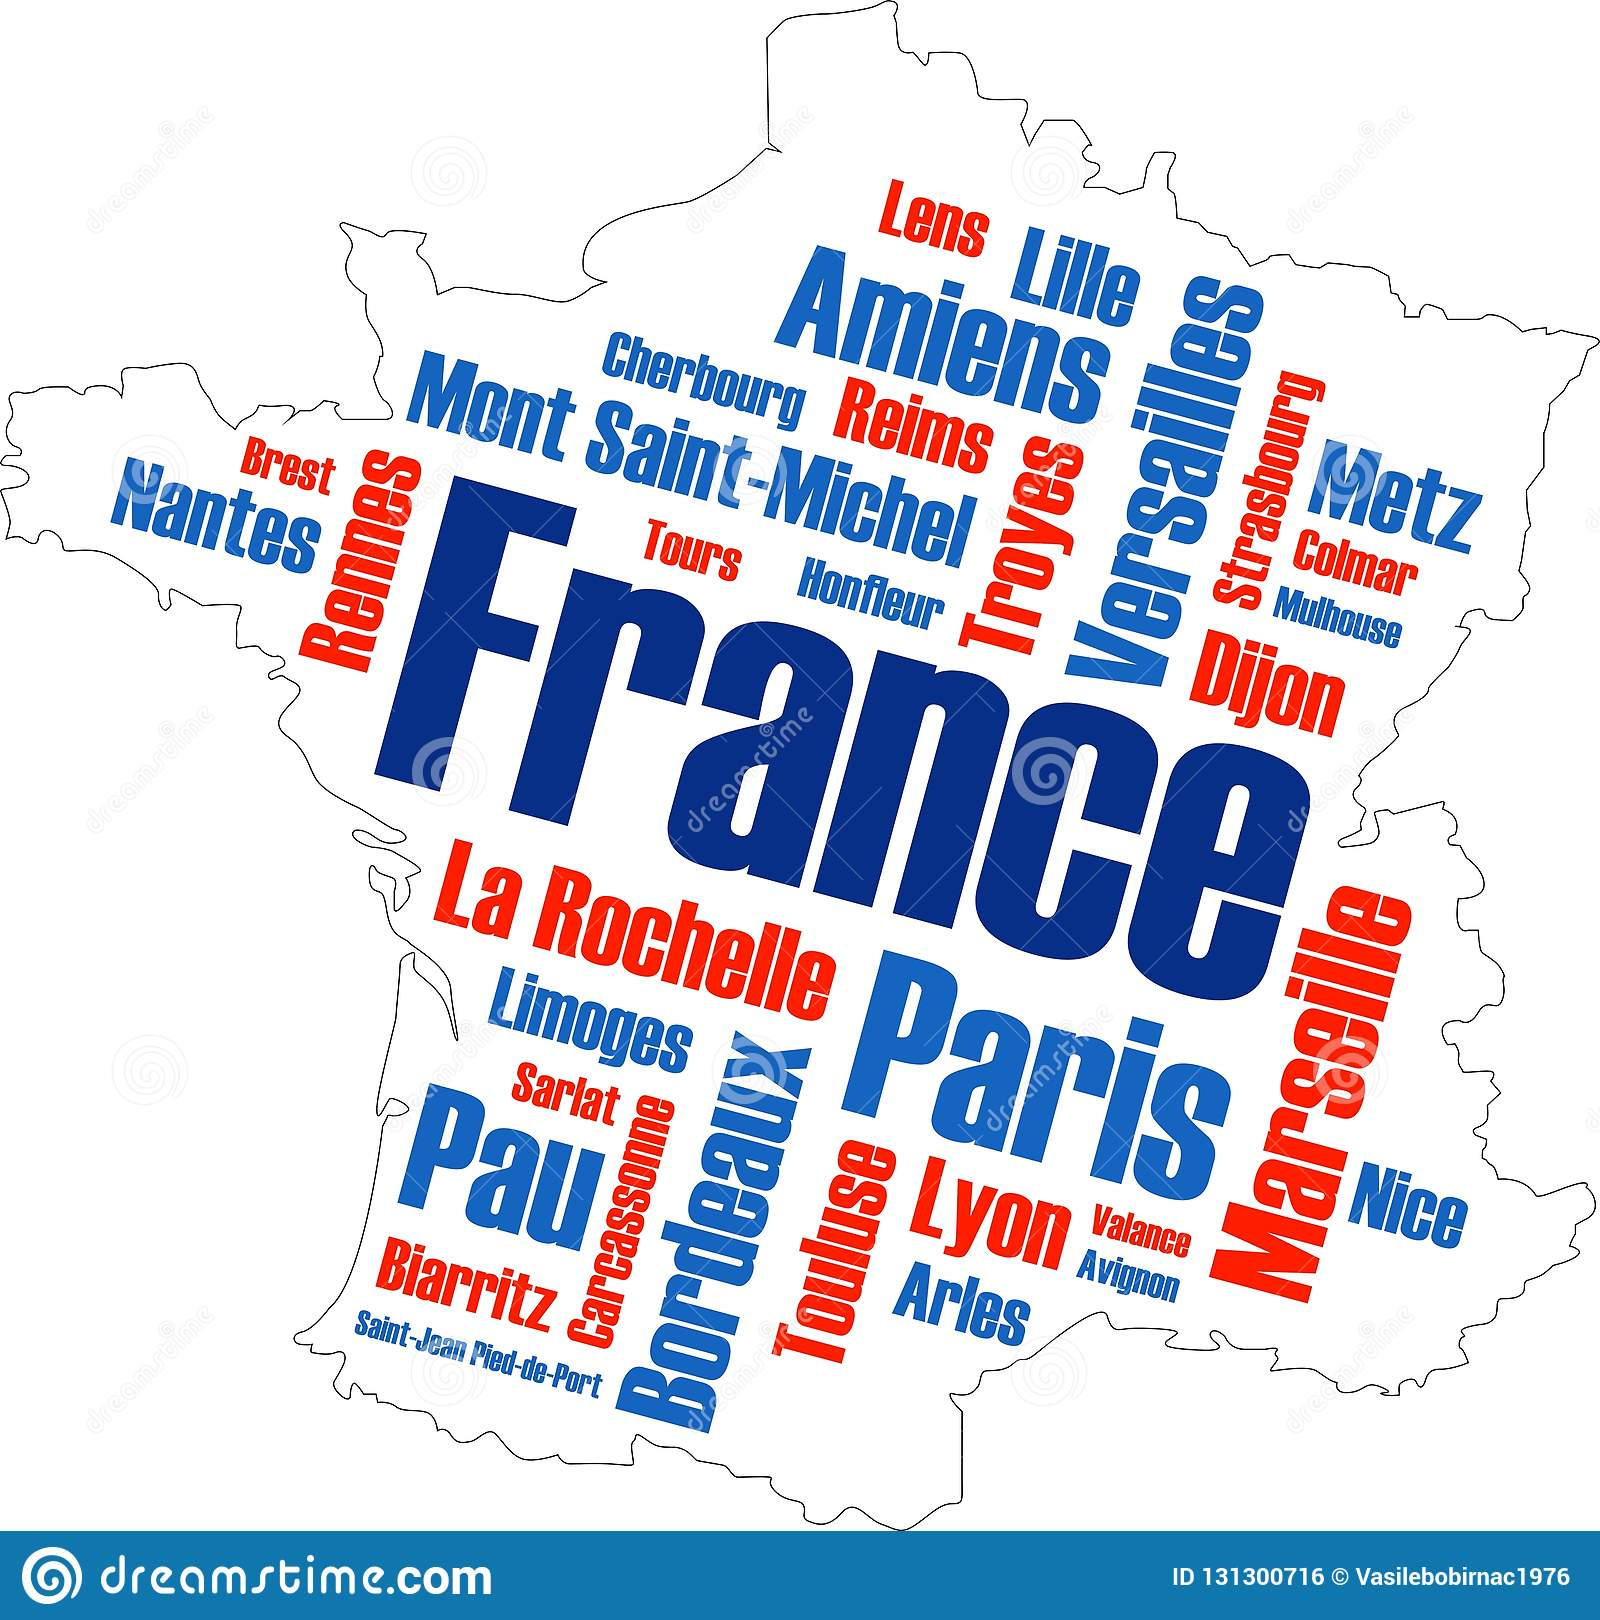 Cities Of France Map.France Map And Cities Stock Illustration Illustration Of Keywords